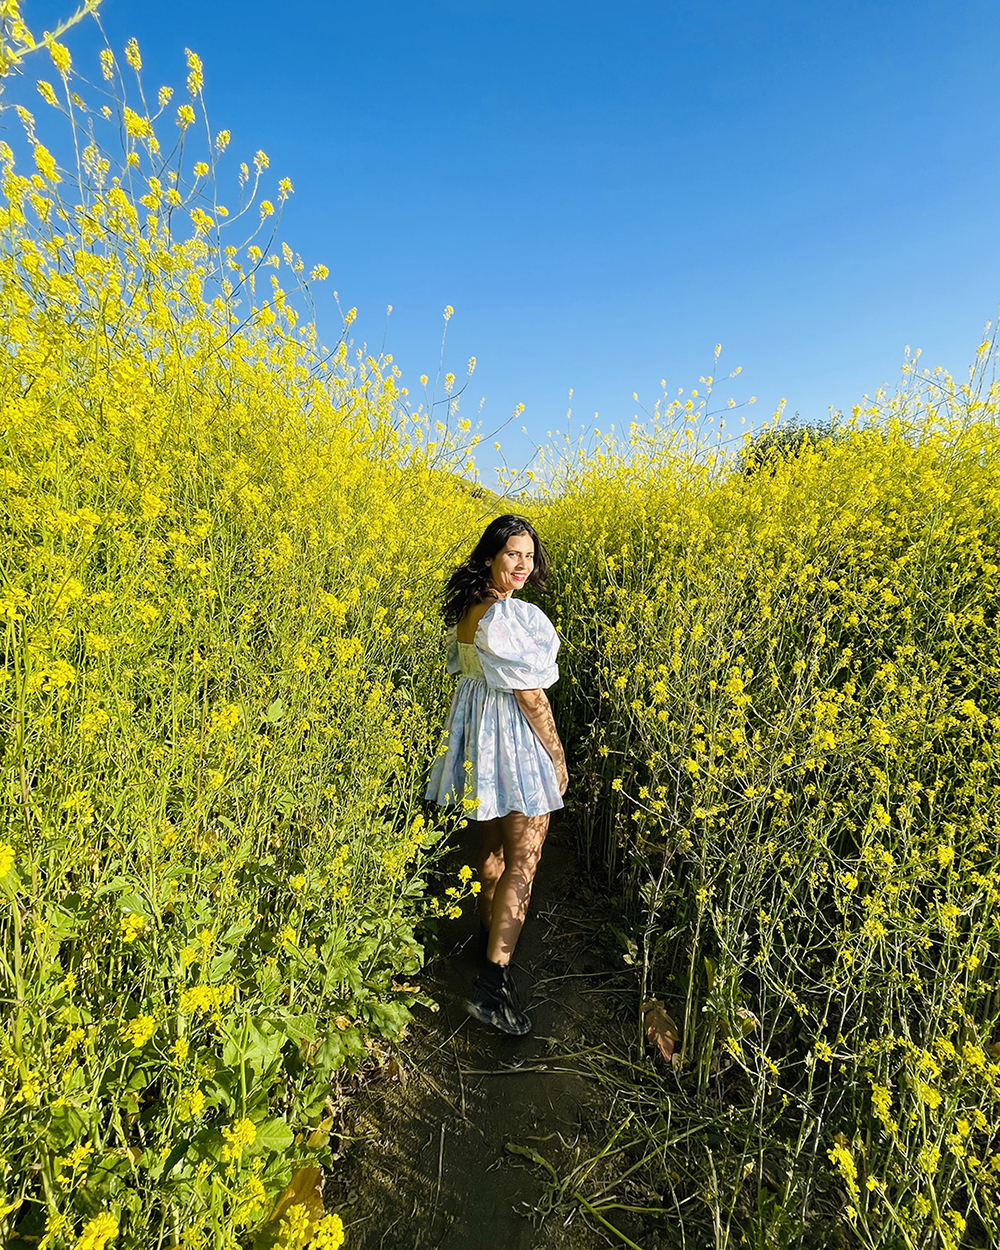 woman hikeing between yellow windflowers at chino hills state park california